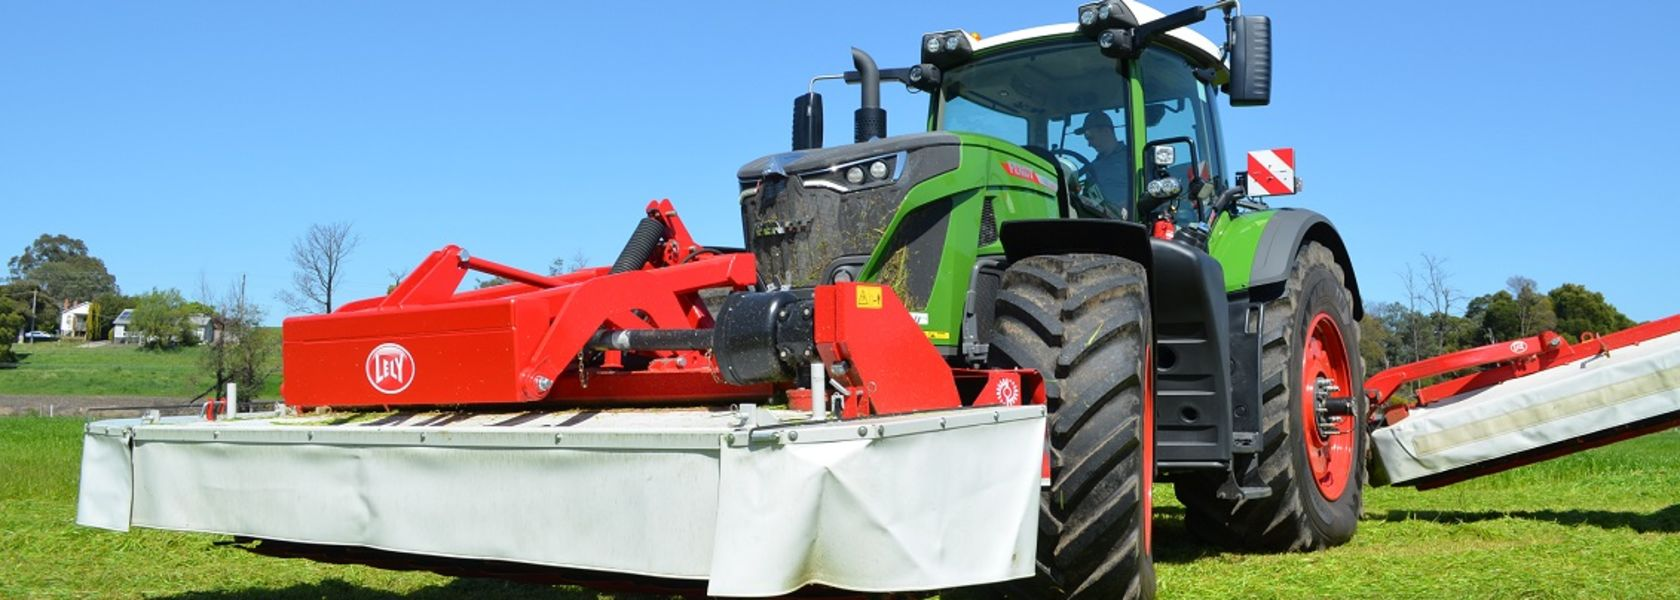 New Fendt range combines power and efficiency